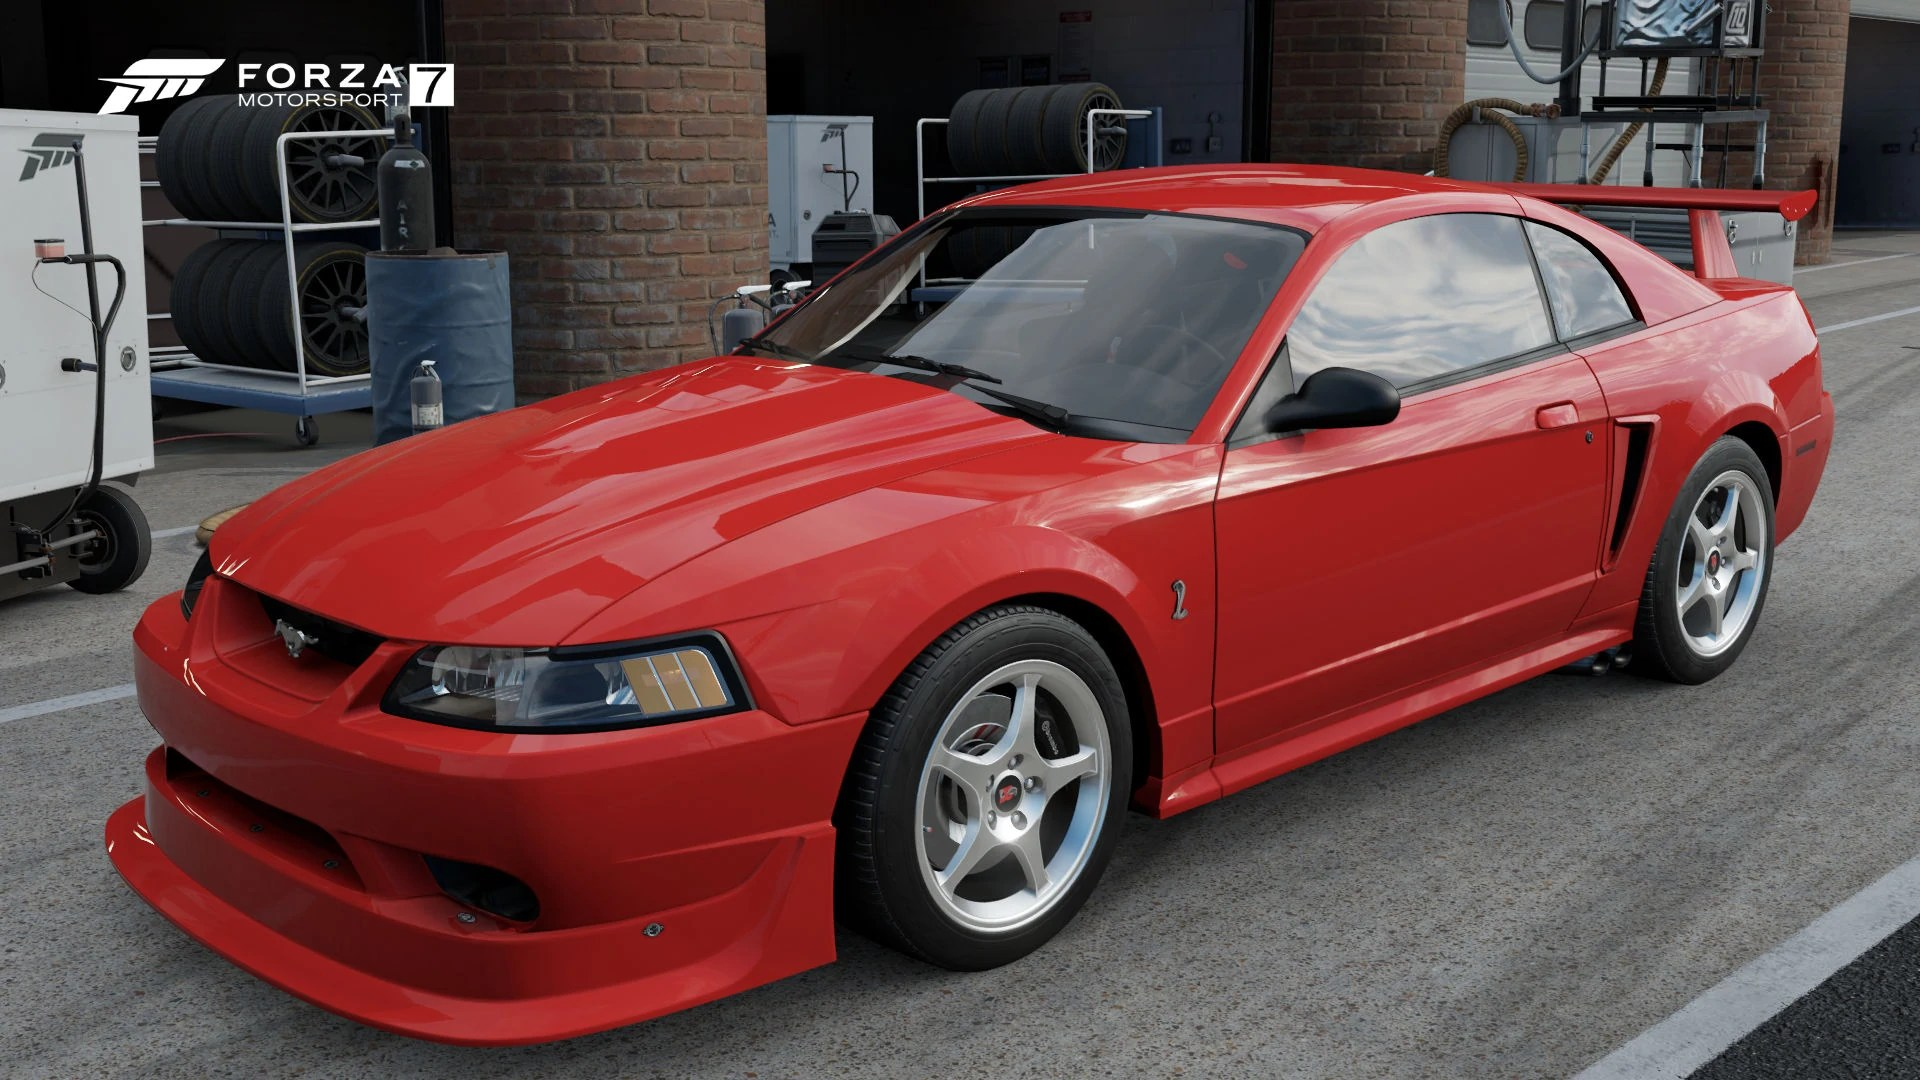 small resolution of 2000 ford svt cobra r in forza horizon 3